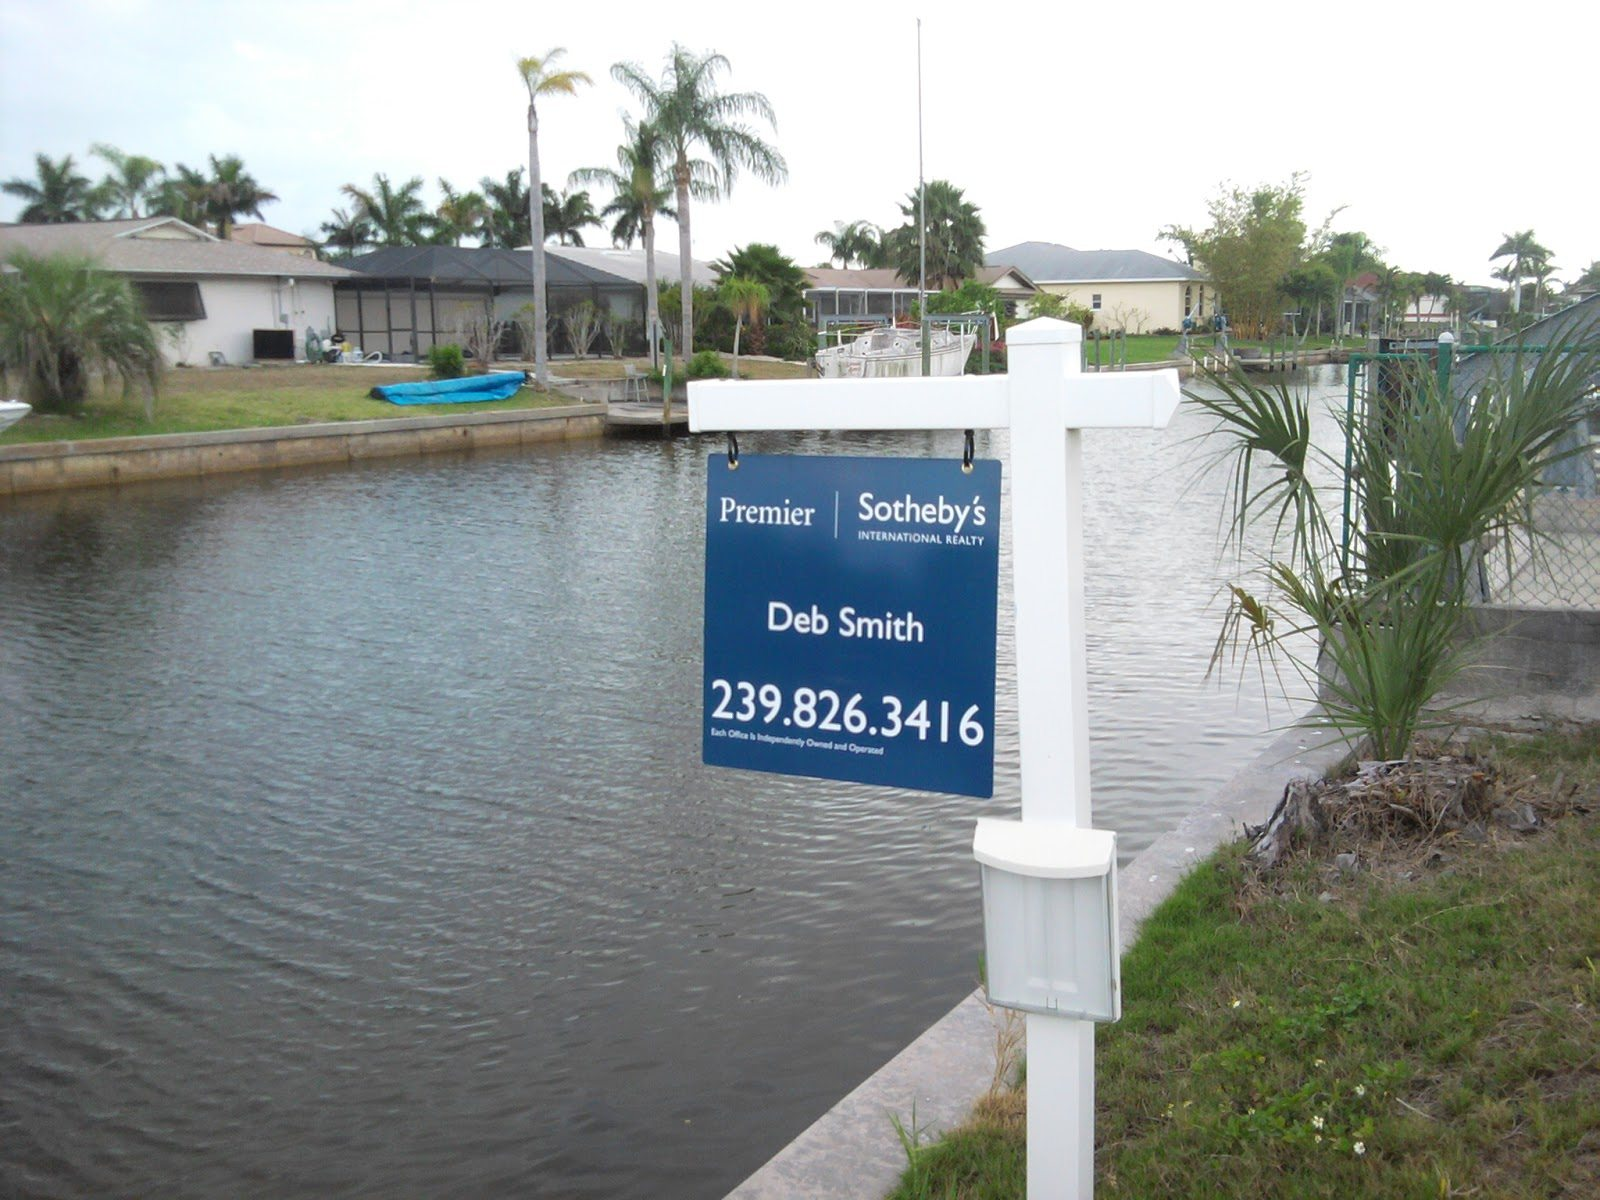 Deb-Smith-Sothebys-Real-Estate-Sign.jpg